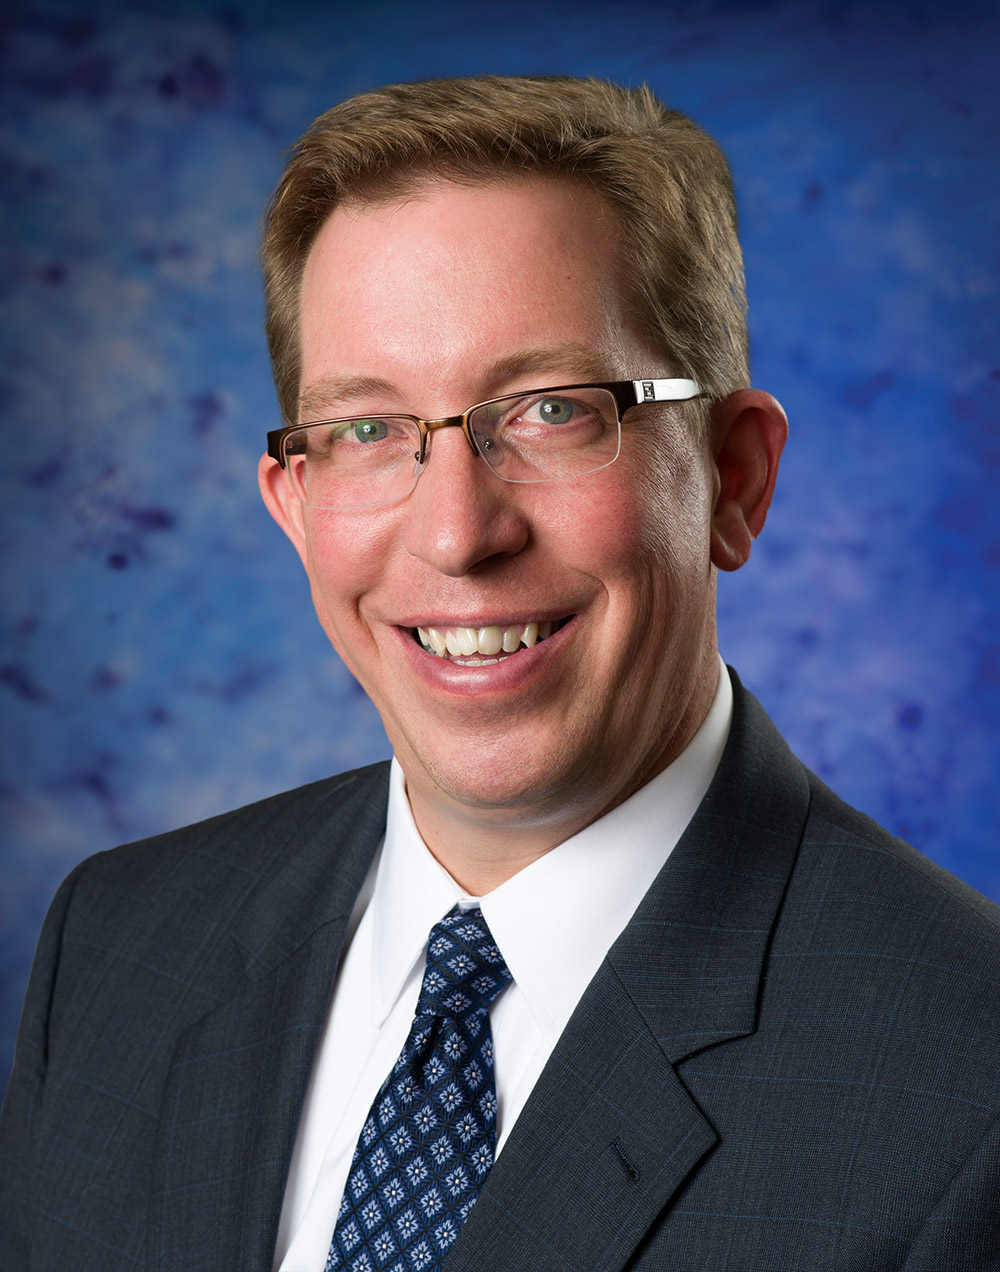 Mark Browne, MD - Senior Vice President and Chief Medical Officer